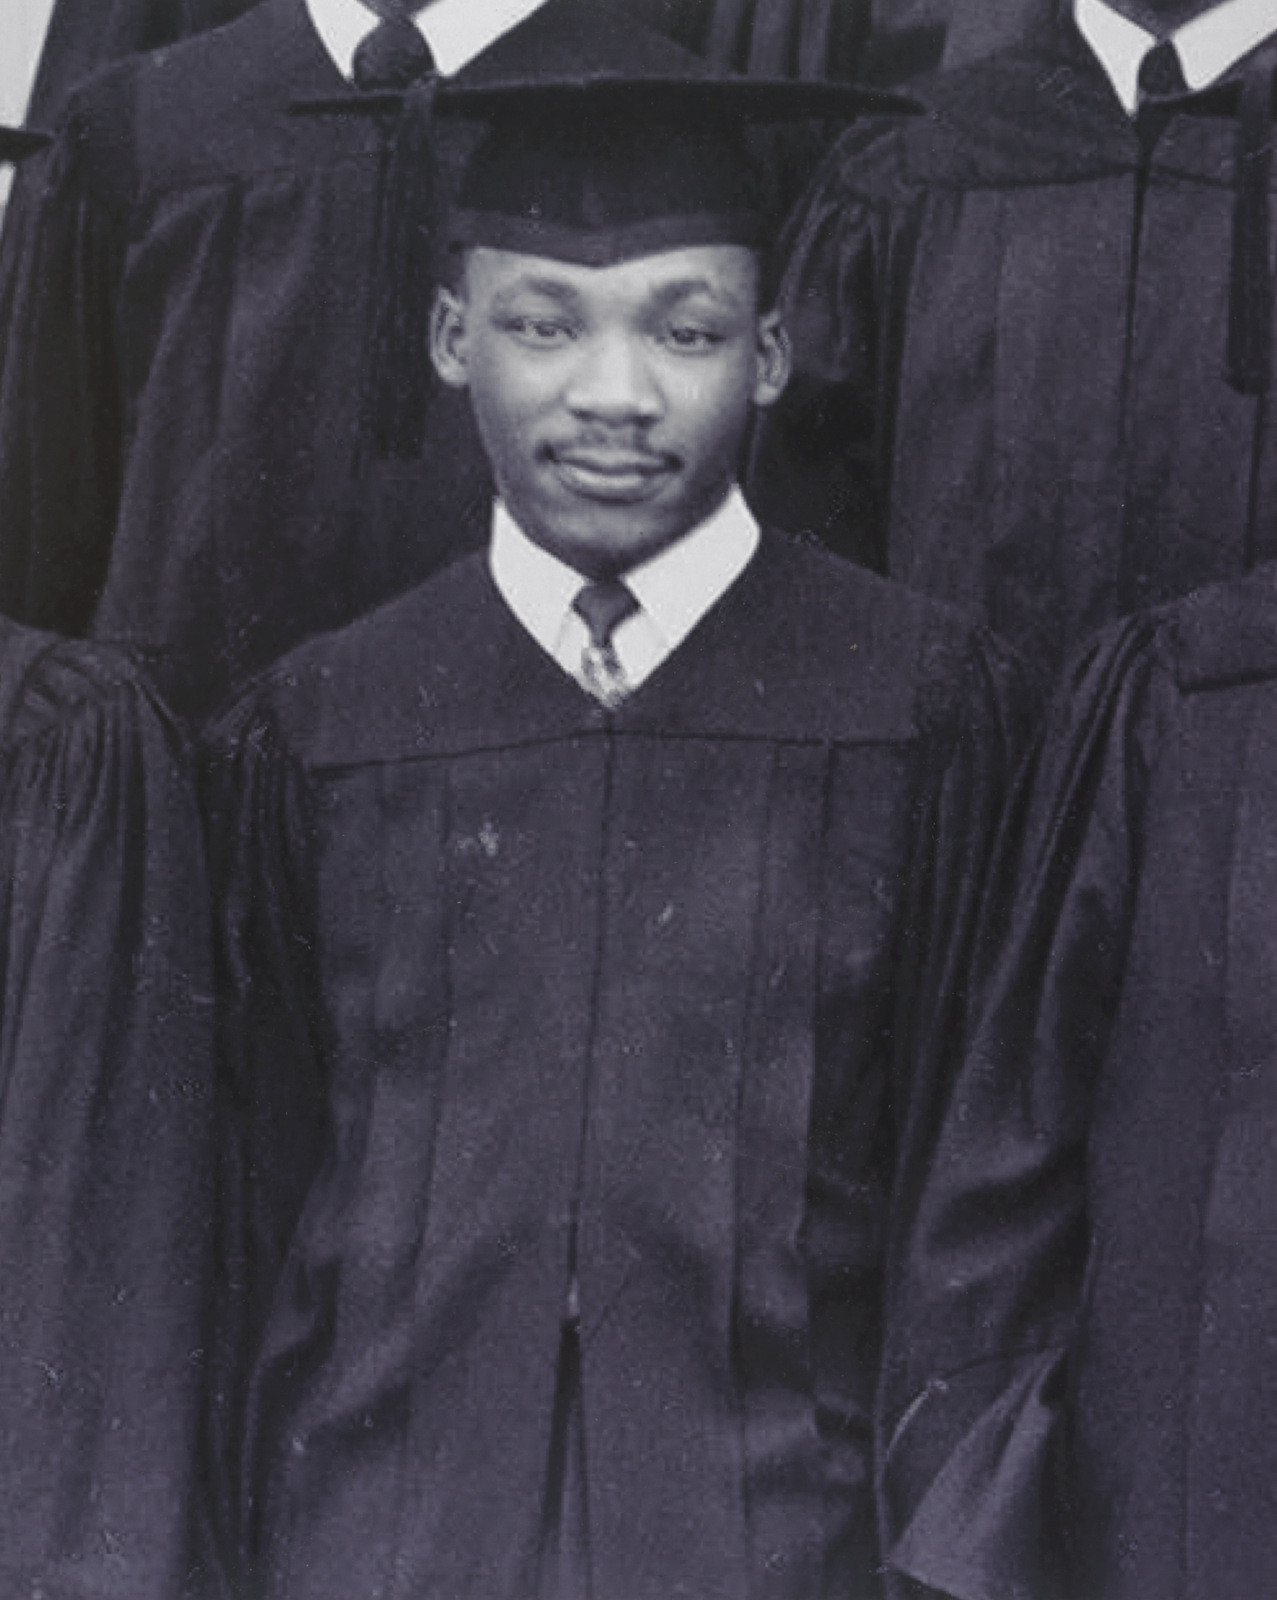 martin luther king photos